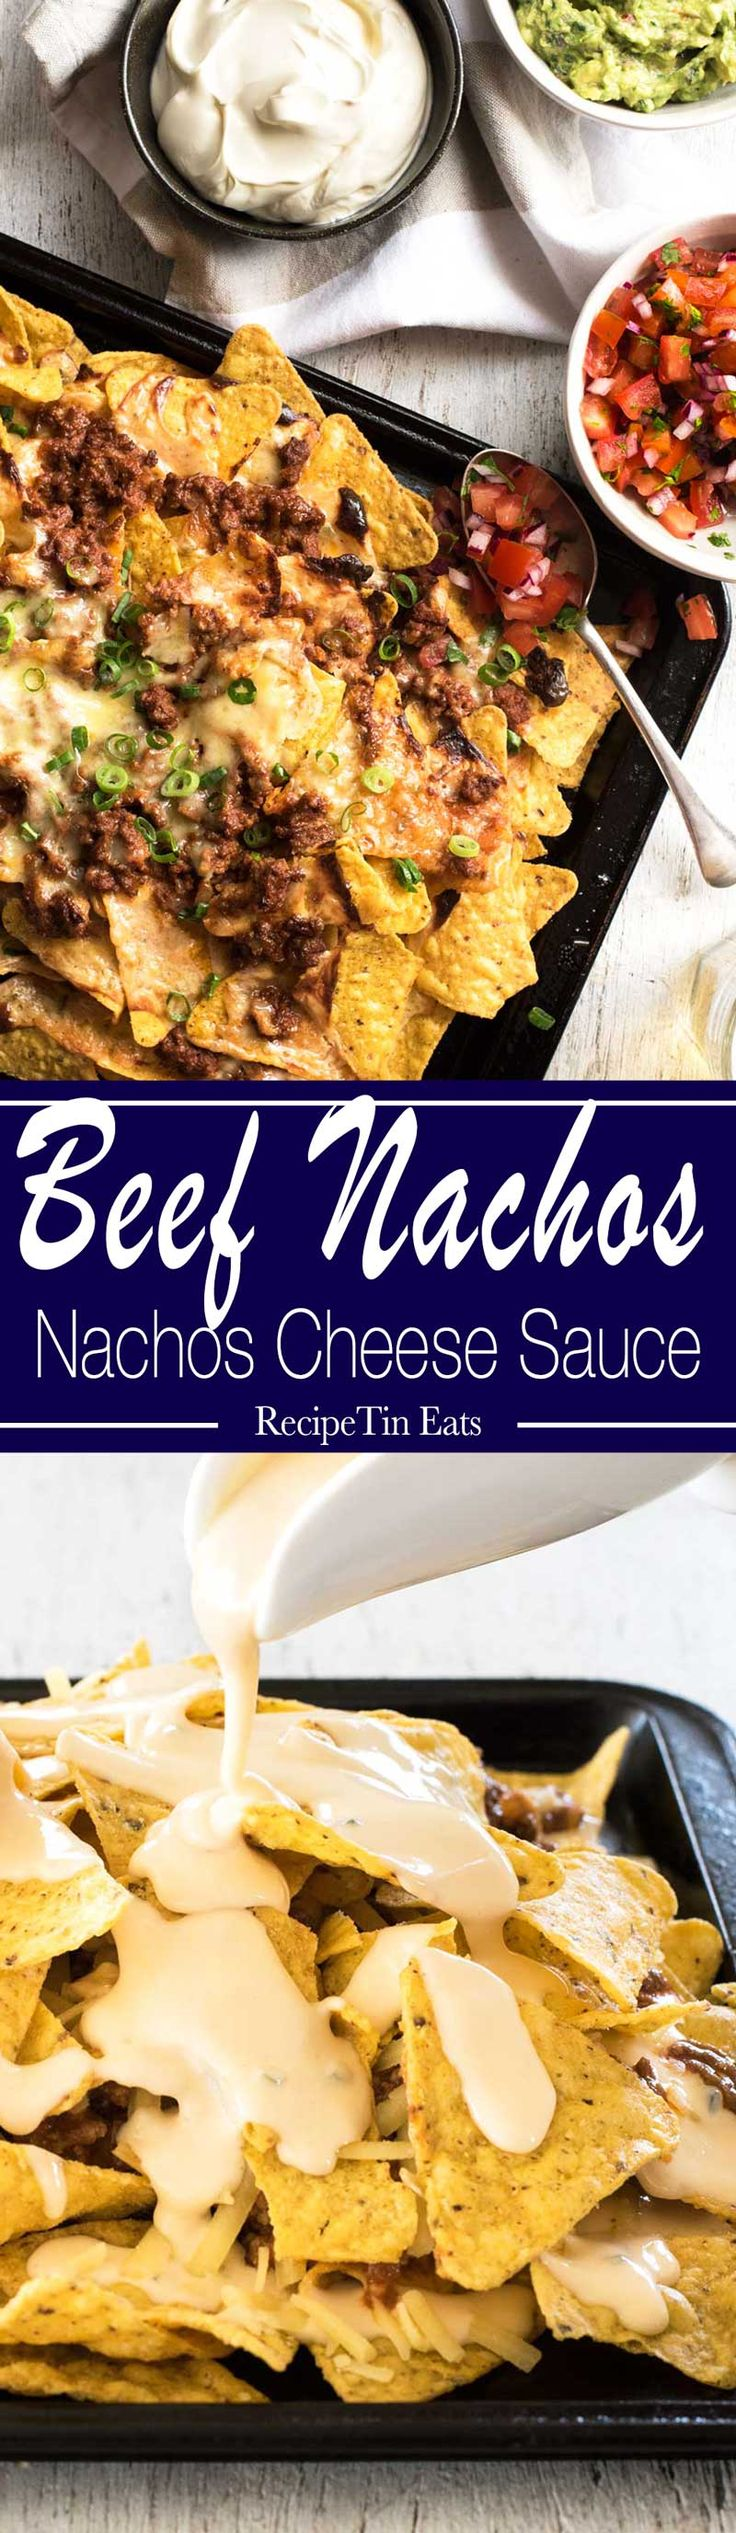 Beef Nachos - made this for book club, everyone went WILD over it!! The cheese sauce is what makes it!!!